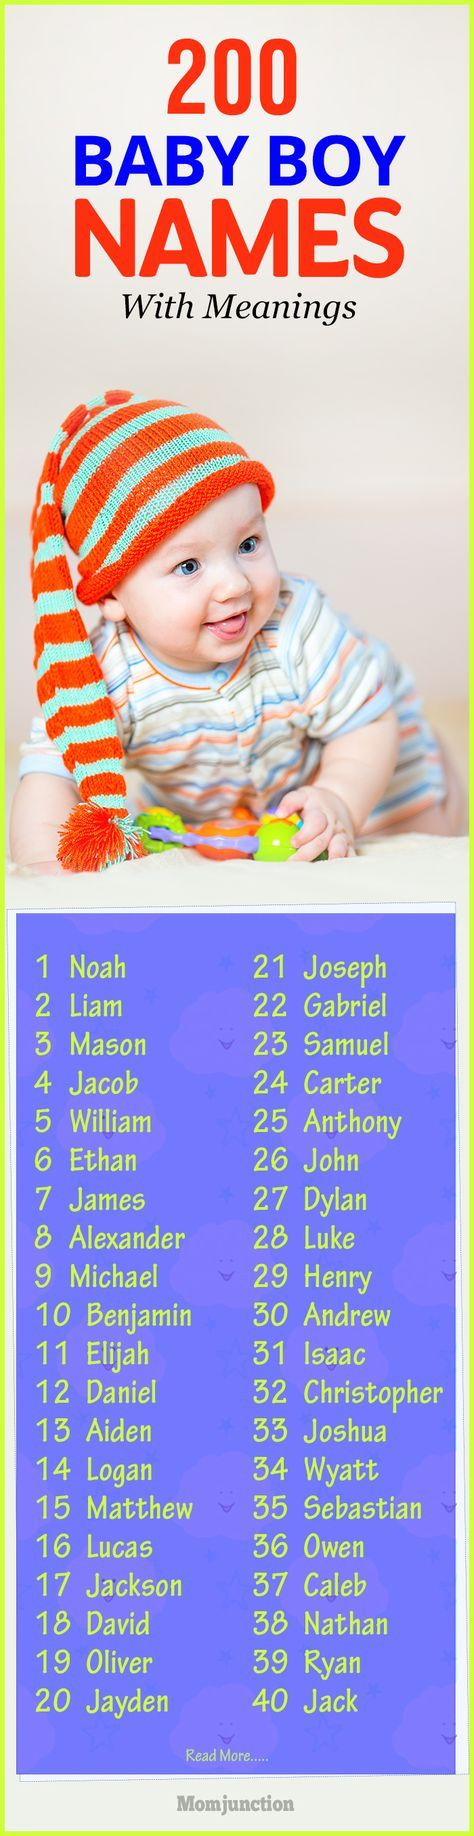 200 Most Popular Baby Boy Names With Meanings